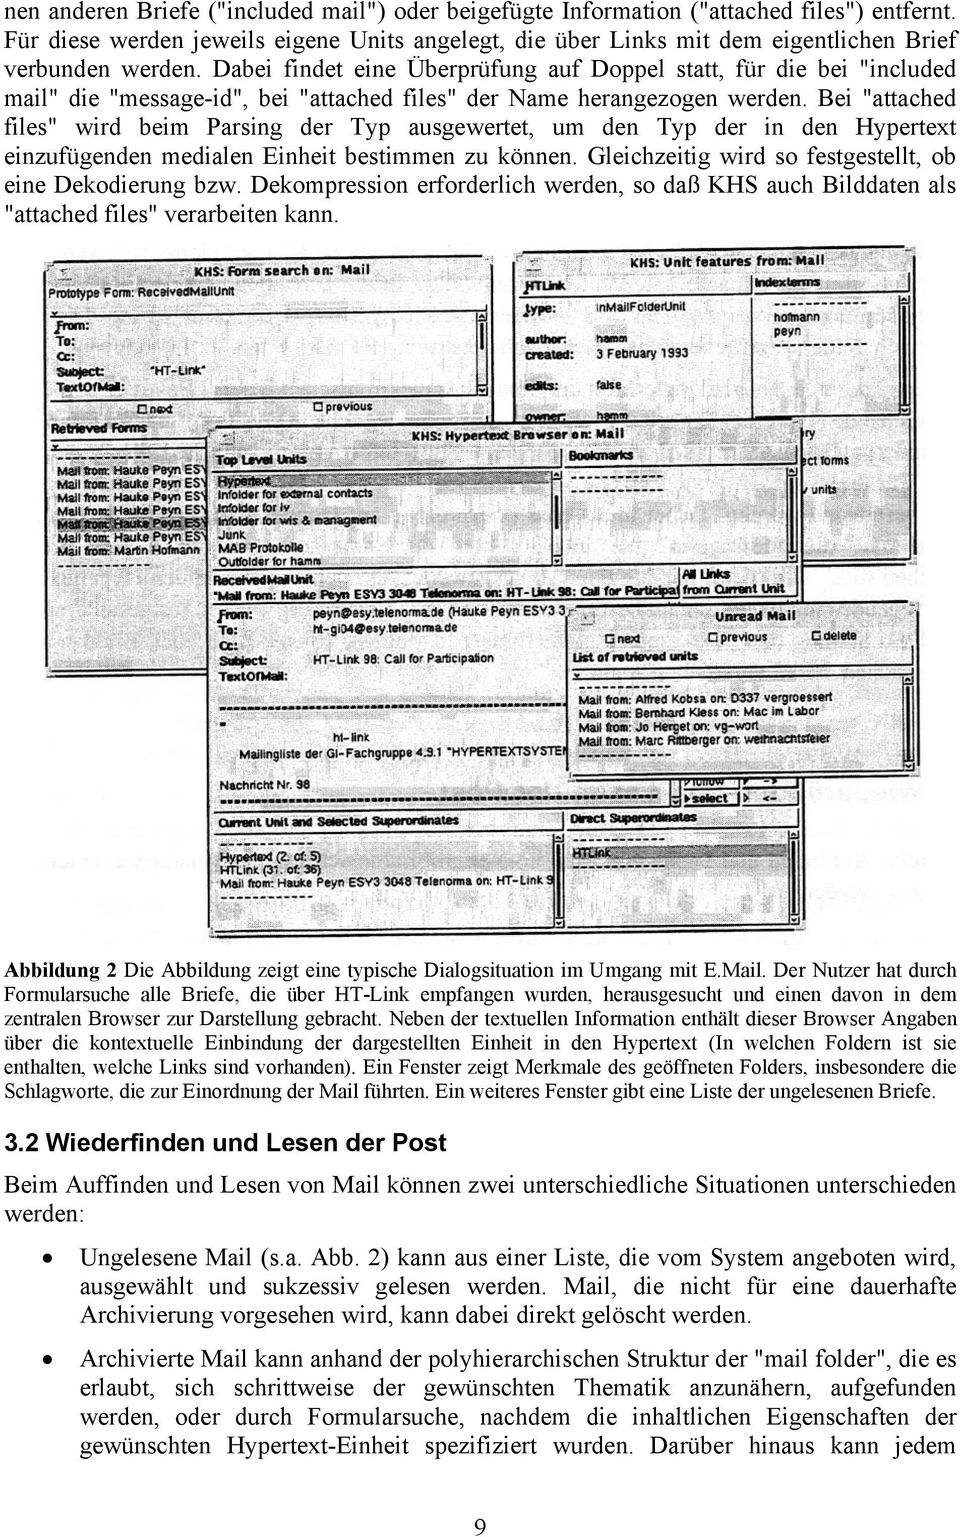 "Dabei findet eine Überprüfung auf Doppel statt, für die bei ""included mail"" die ""message-id"", bei ""attached files"" der Name herangezogen werden."